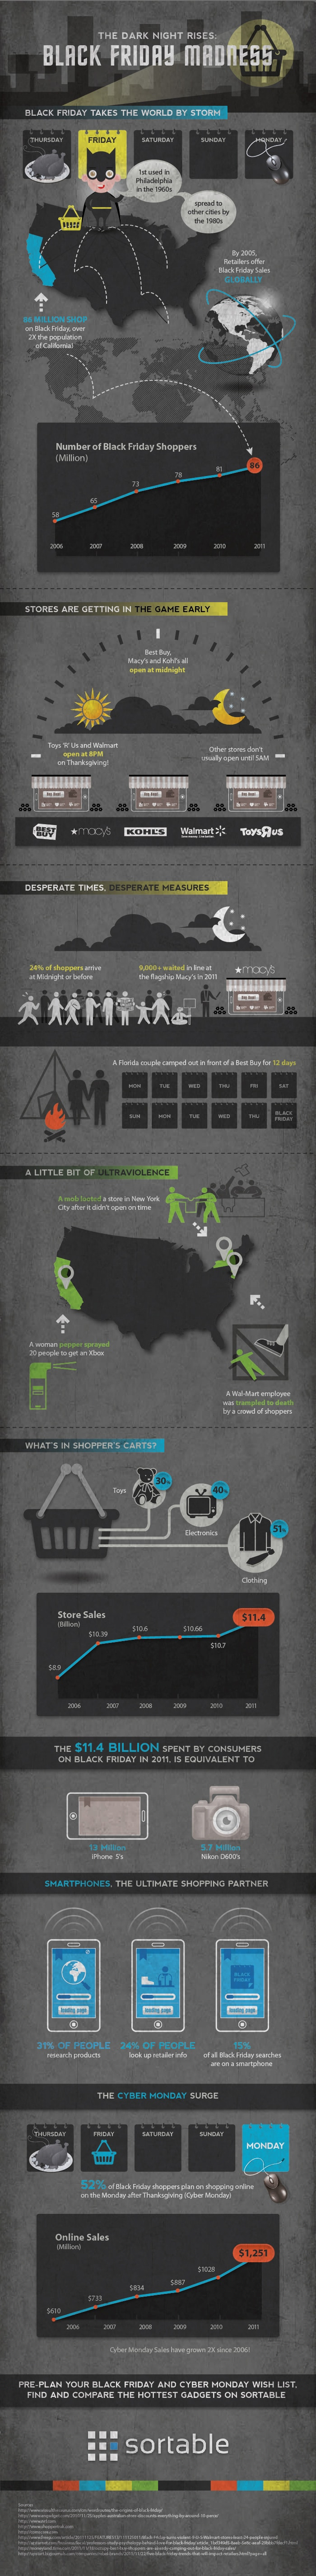 black-friday-shopping-tips-infographic